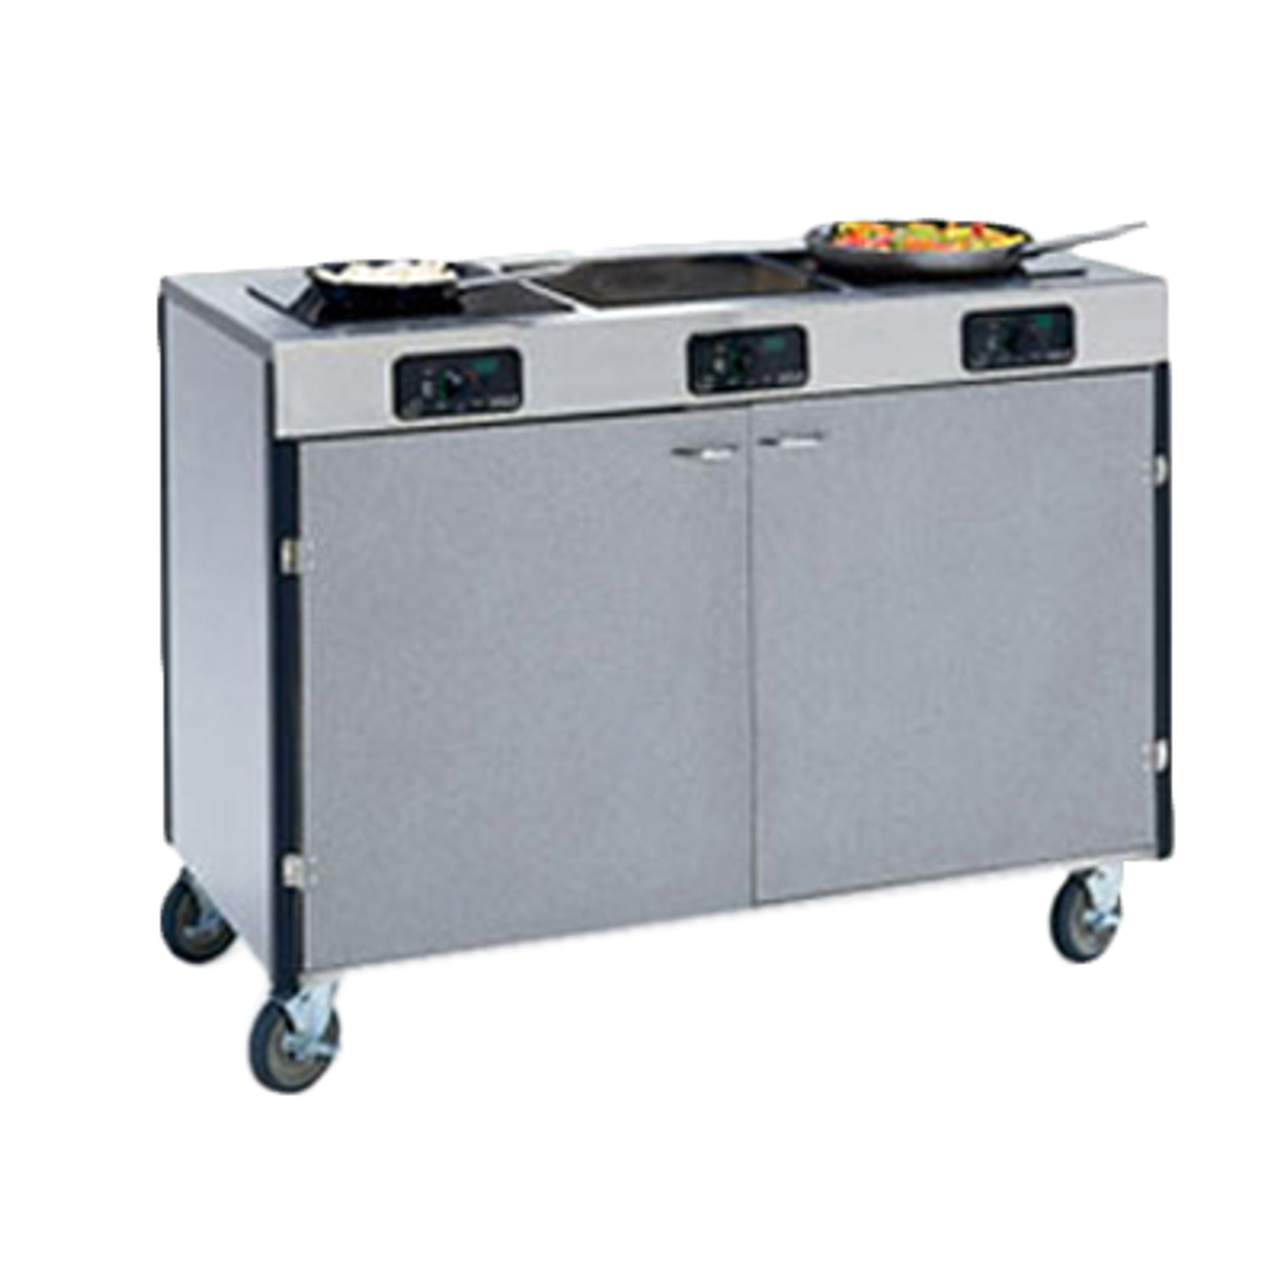 """Creation Express™ Station Mobile Cooking Cart, 48"""" x 22"""" x 35-1/2""""H, temperature range 90° - 440°F, LED control panel, (3) induction heat stove, without filtration system, stainless steel top, stainless steel interior with laminated exterior, interior shelf, with doors, 5"""" swivel No-Mark® polyurethane casters (2) with brakes, ETL, Made in USA"""